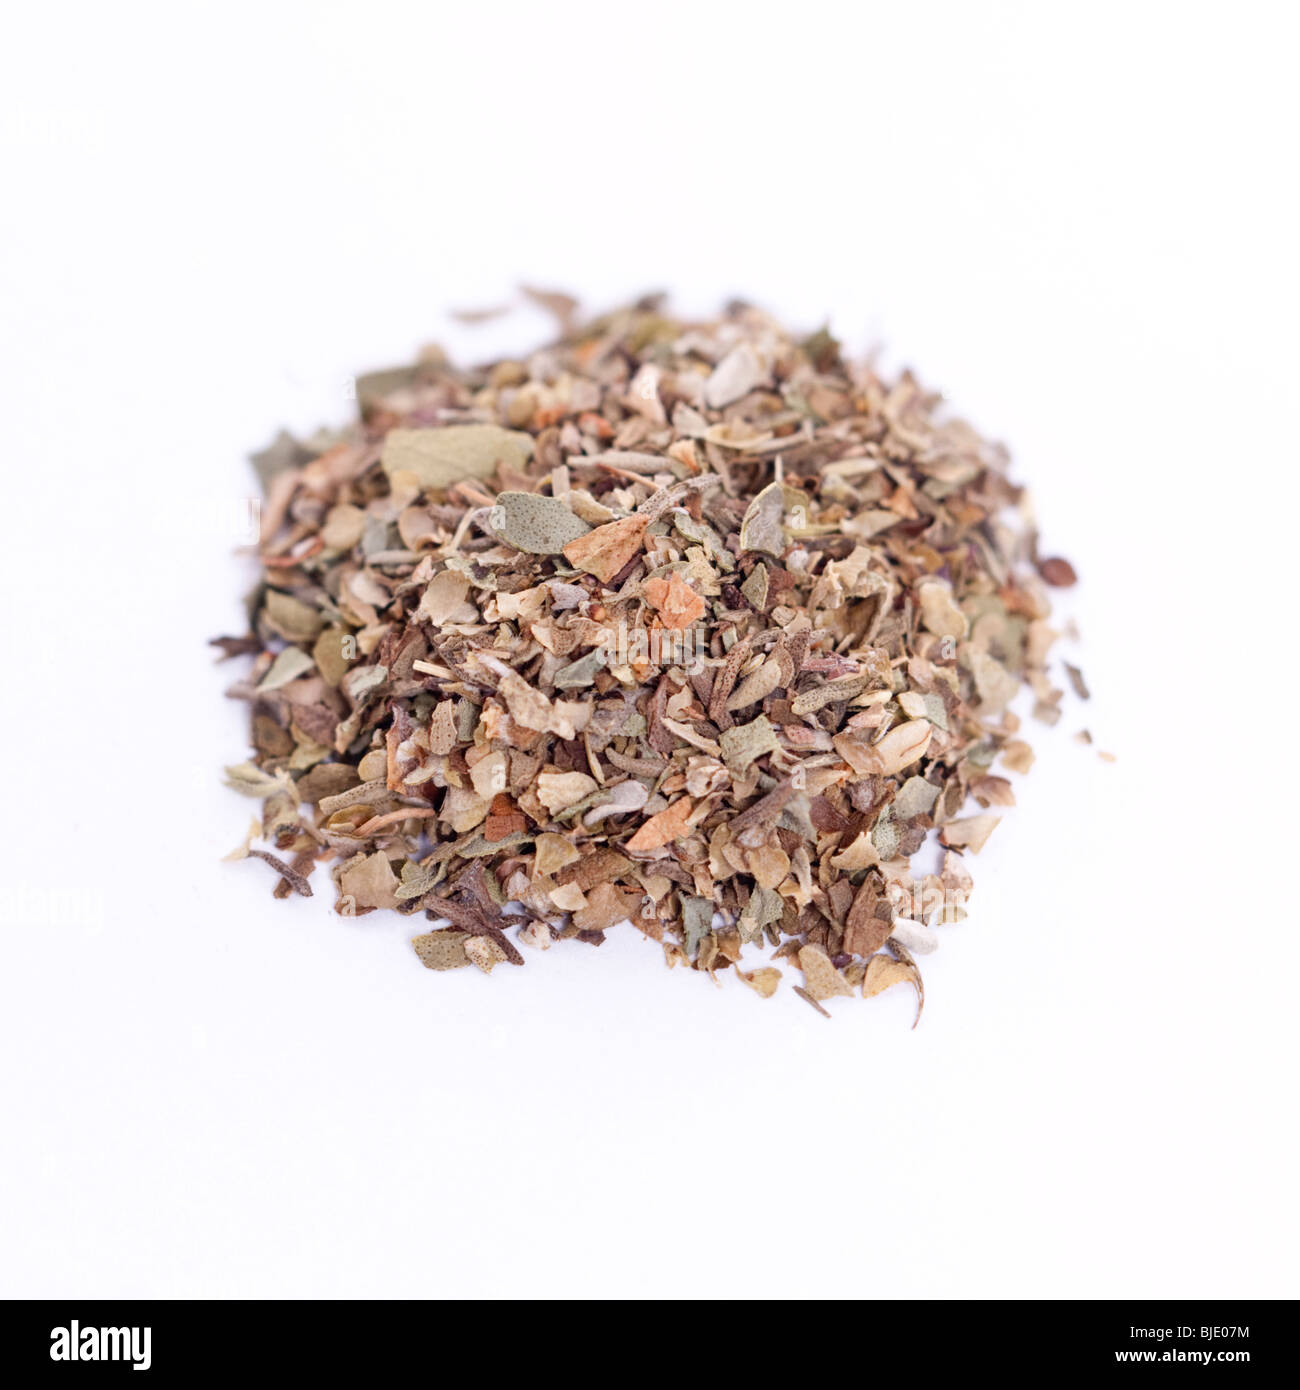 A pile of mixed herbs on a white background Stock Photo